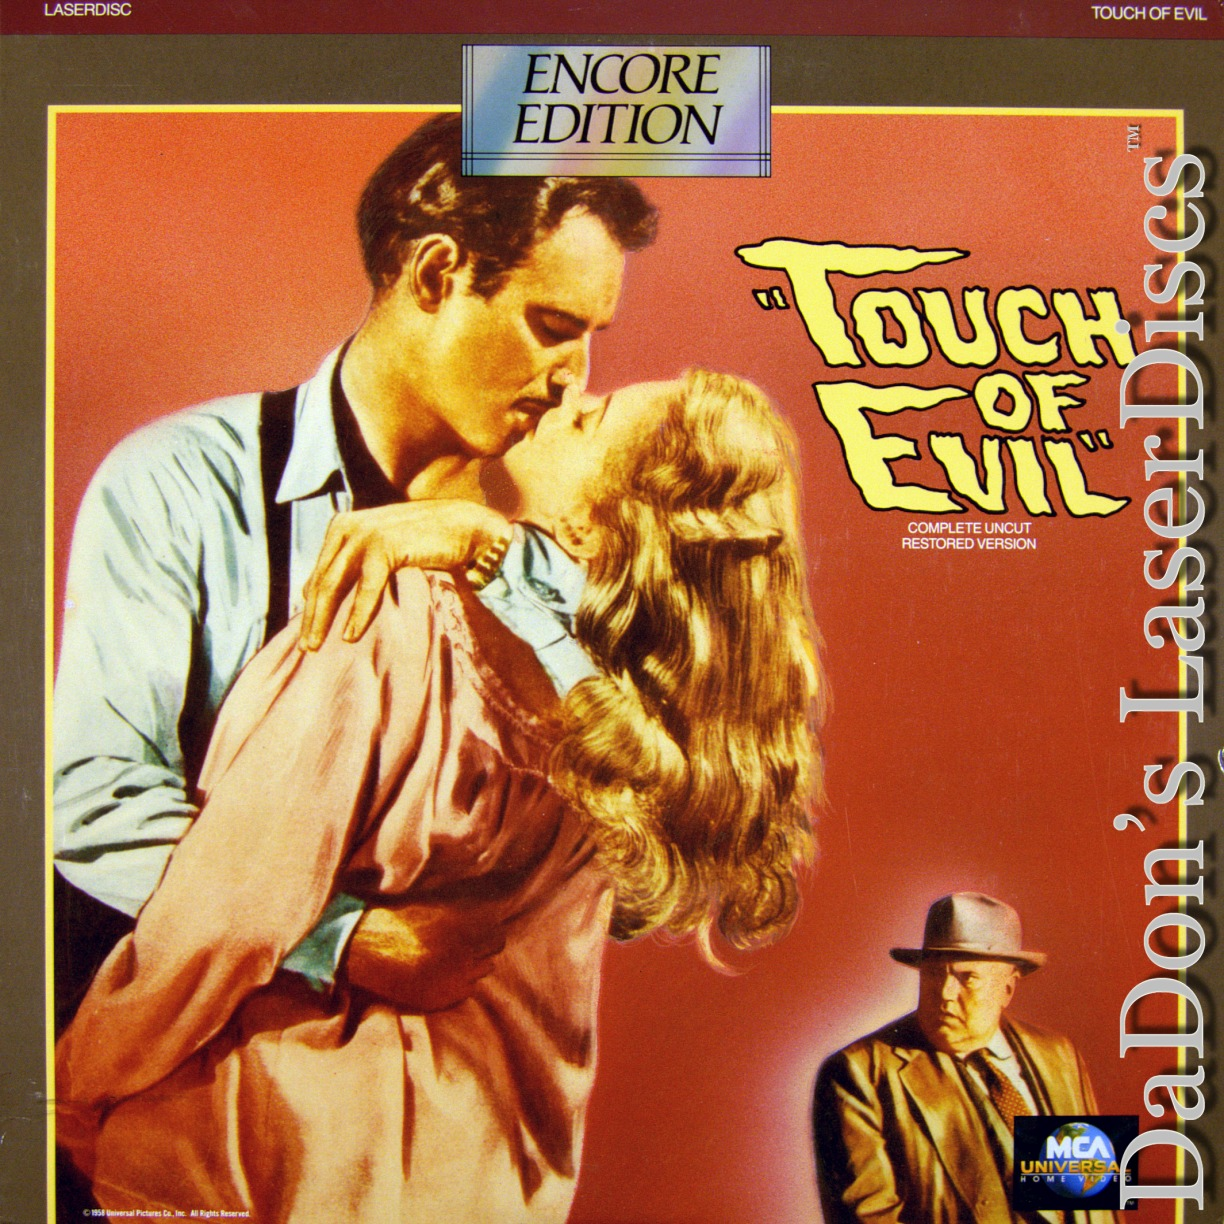 touch of evil abuse of power 01012011 read the empire review of empire essay: touch of evil  a bloated figure whose abuse of power has turned him into a spiritual and physical monstrosity.